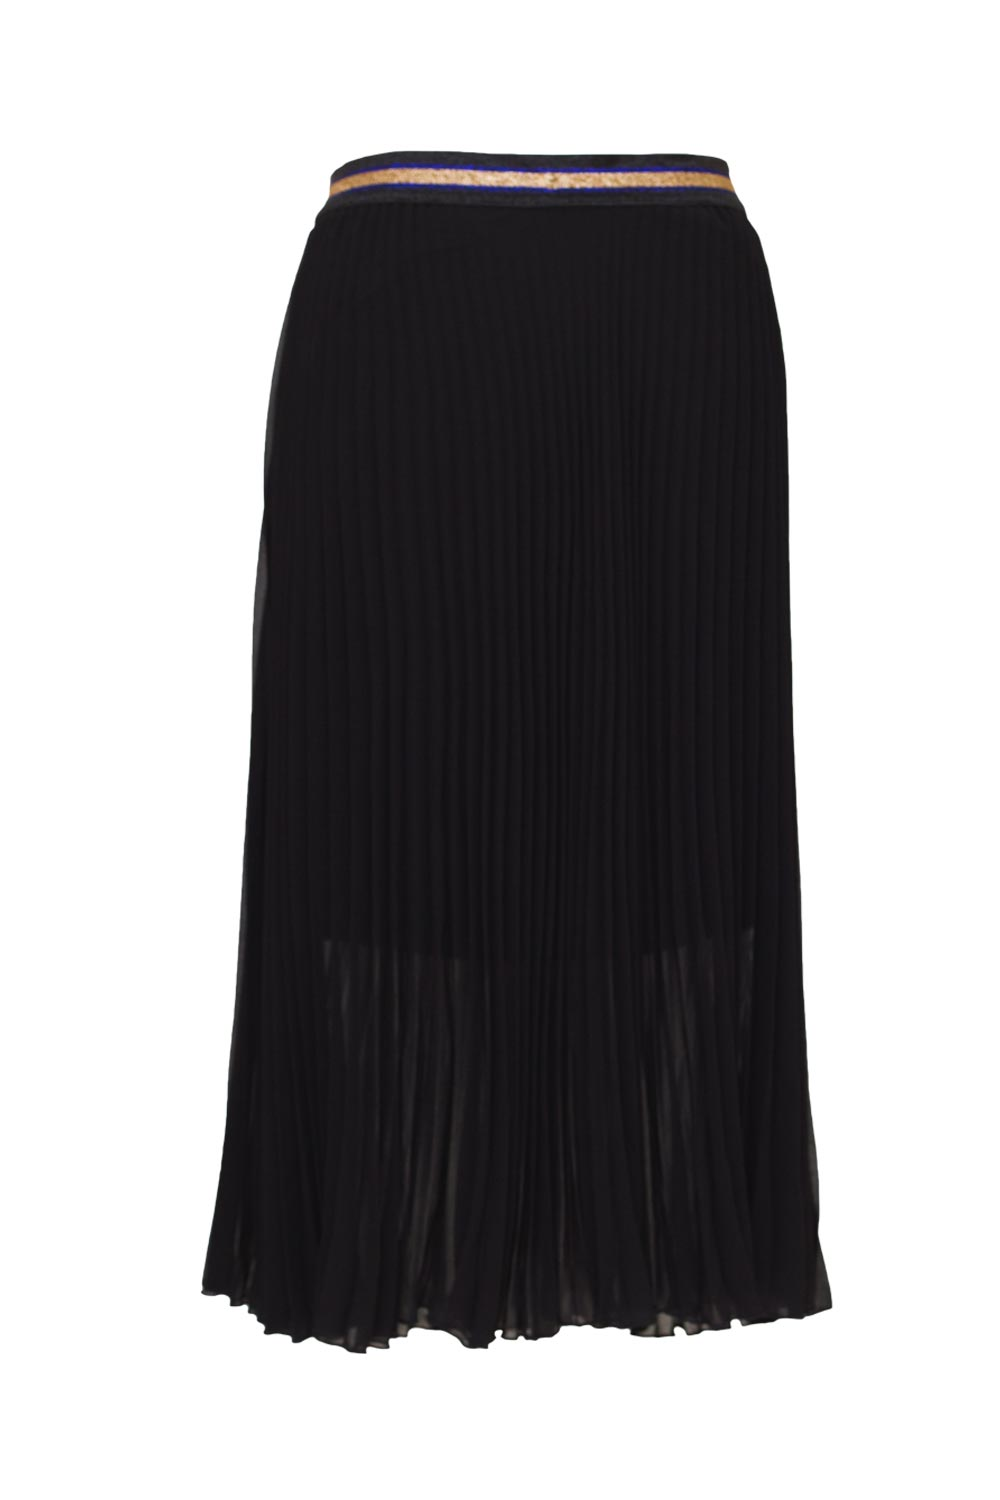 Magazine - W1723 Midi Pleat Skirt